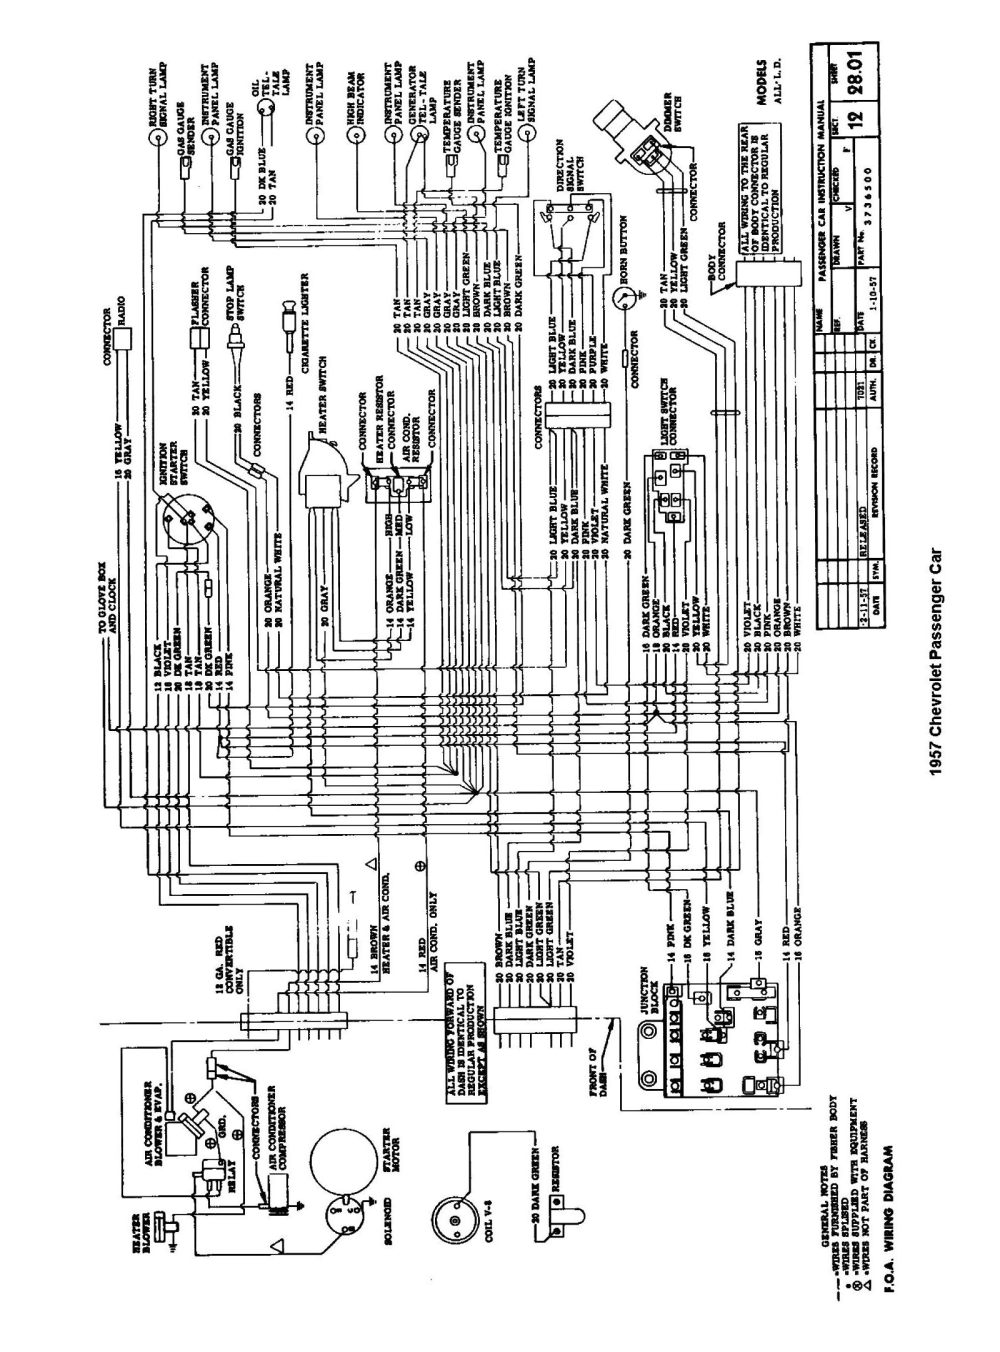 medium resolution of 57 chevy pickup wiring excellent electrical wiring diagram house 4 chevy truck wiring 1964 chevy pickup